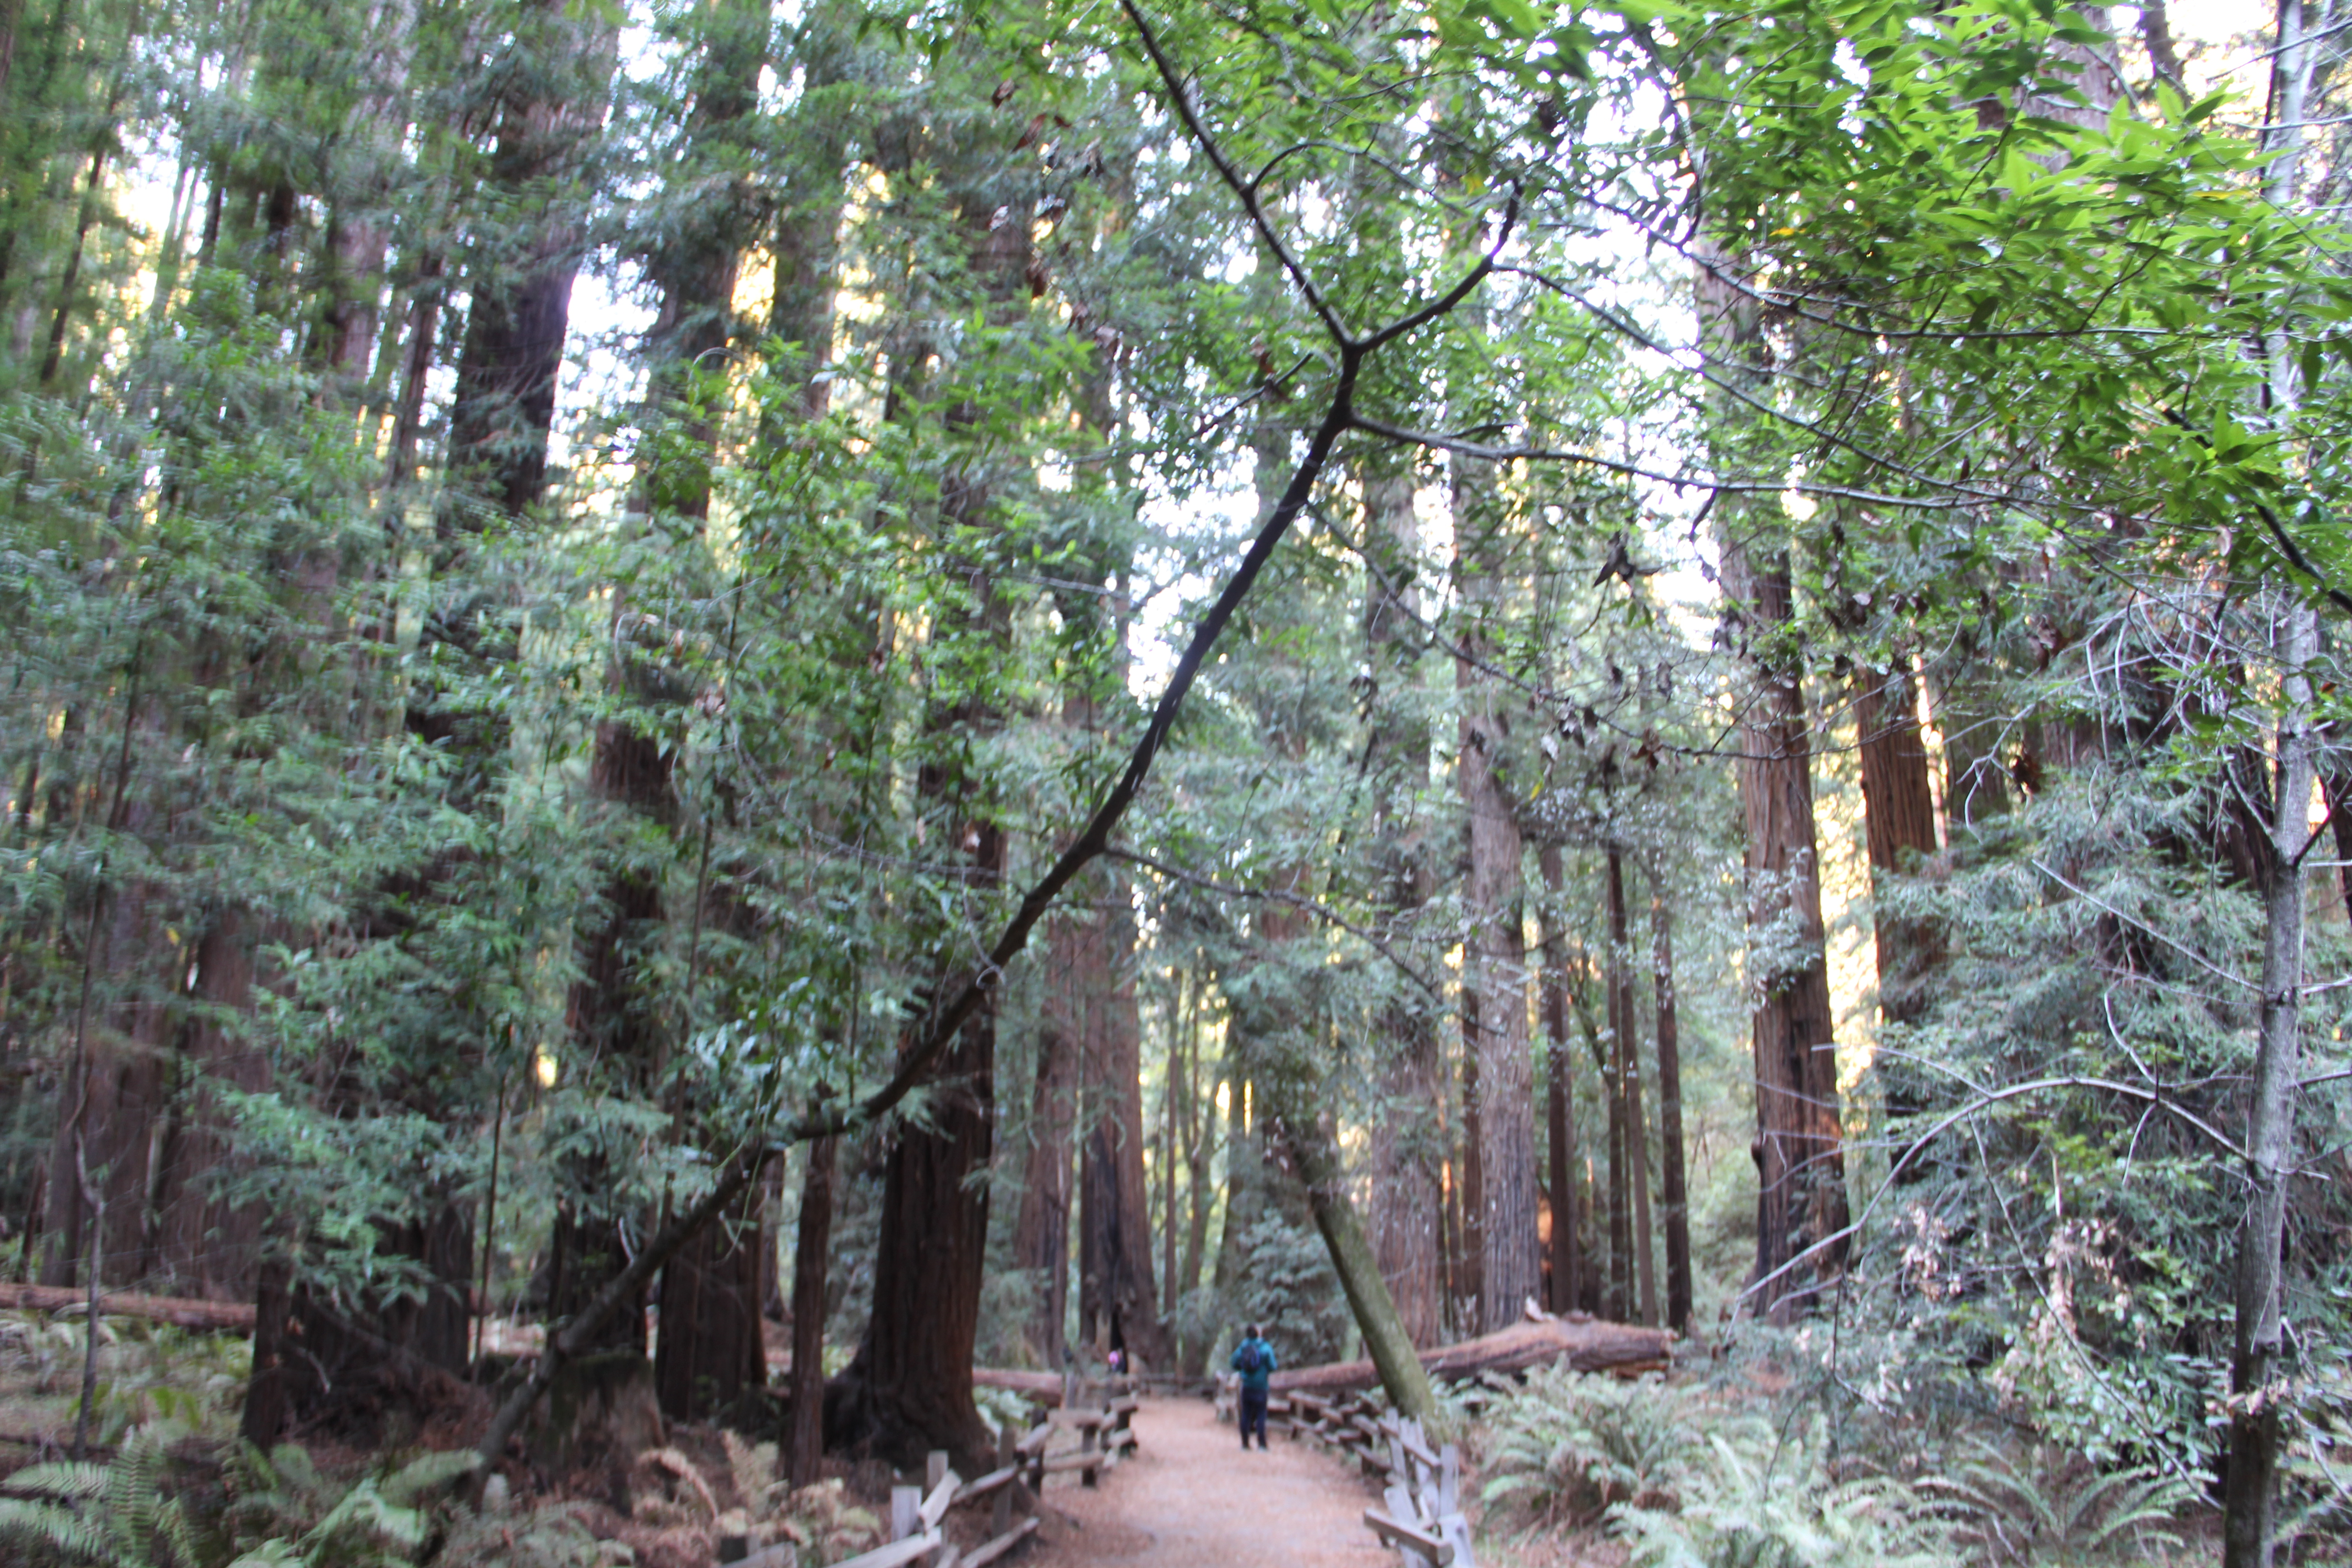 Pathway in Muir Woods showing the human-to-tree scale in the forest.